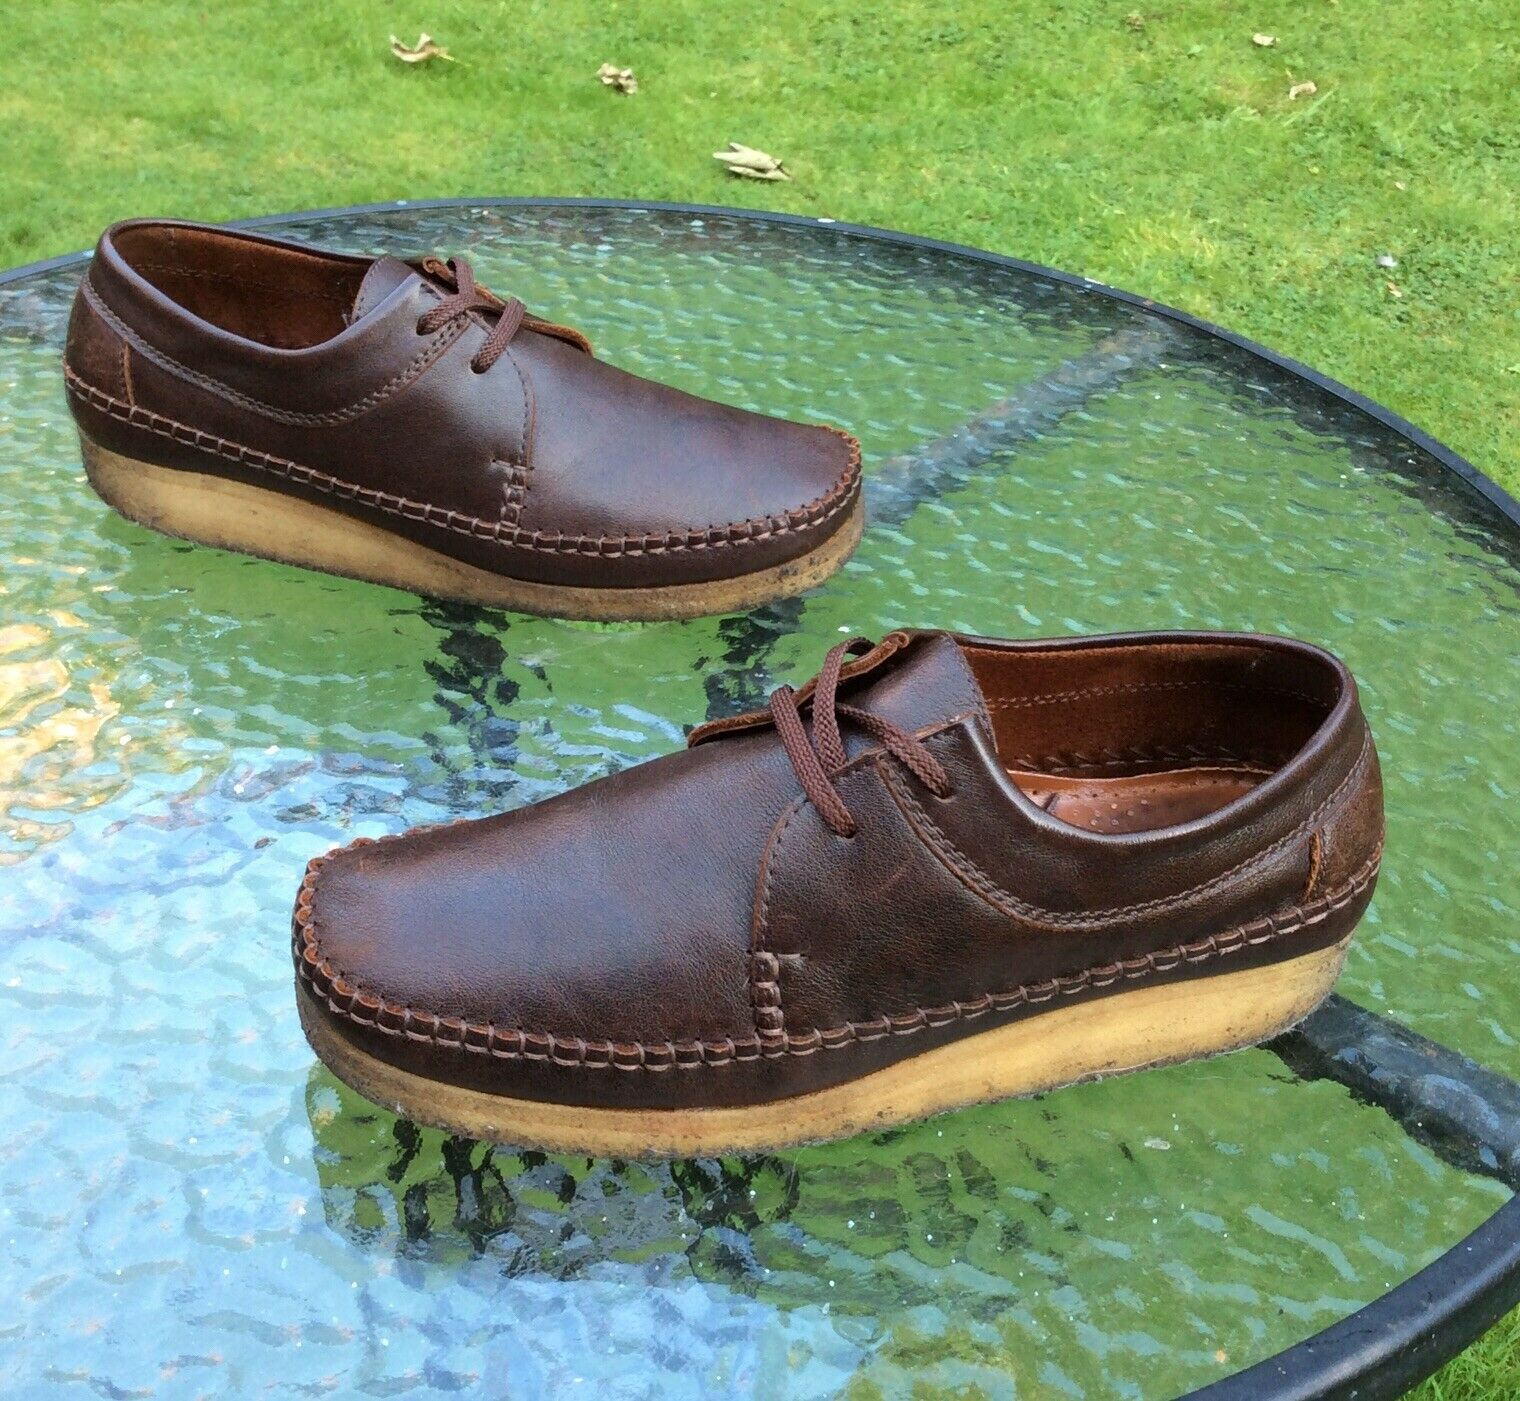 Clarks Originals Wallabees Weaver Chocolate Brown Leather Moccasins Shoes | 9 UK